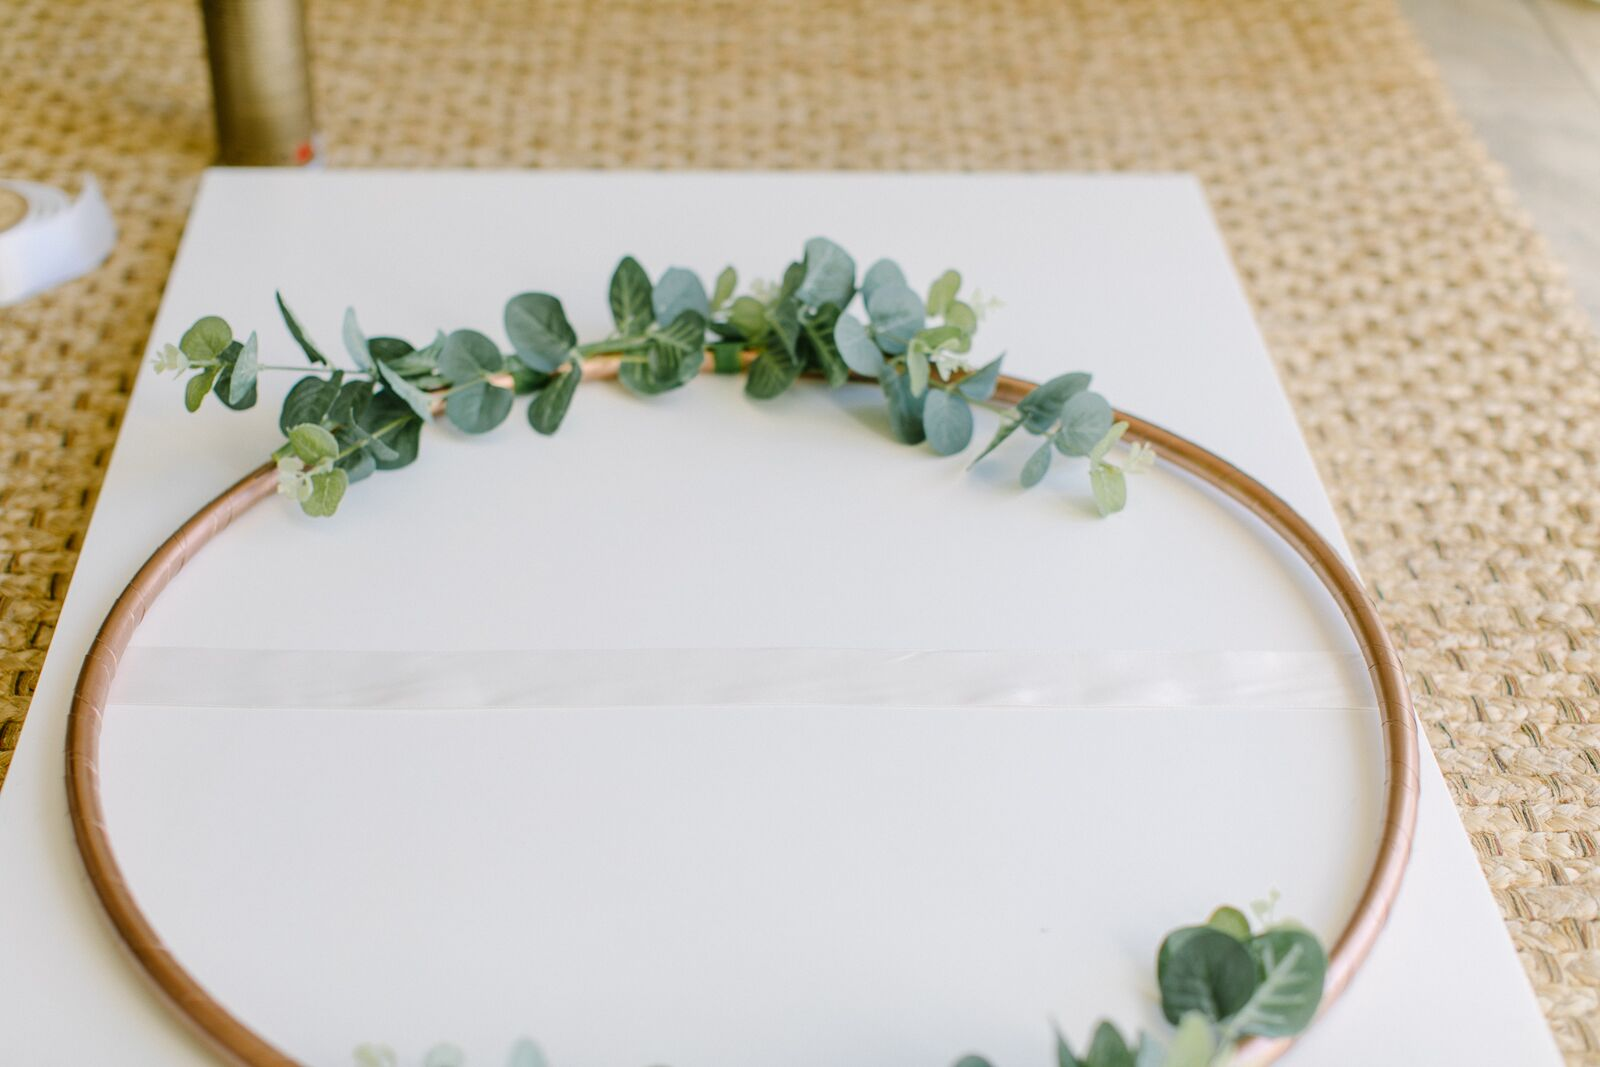 DIY Hula Hoop Table Plan | Copper Table Plan with Eucalyptus, Greenery and Ivory Satin Ribbon